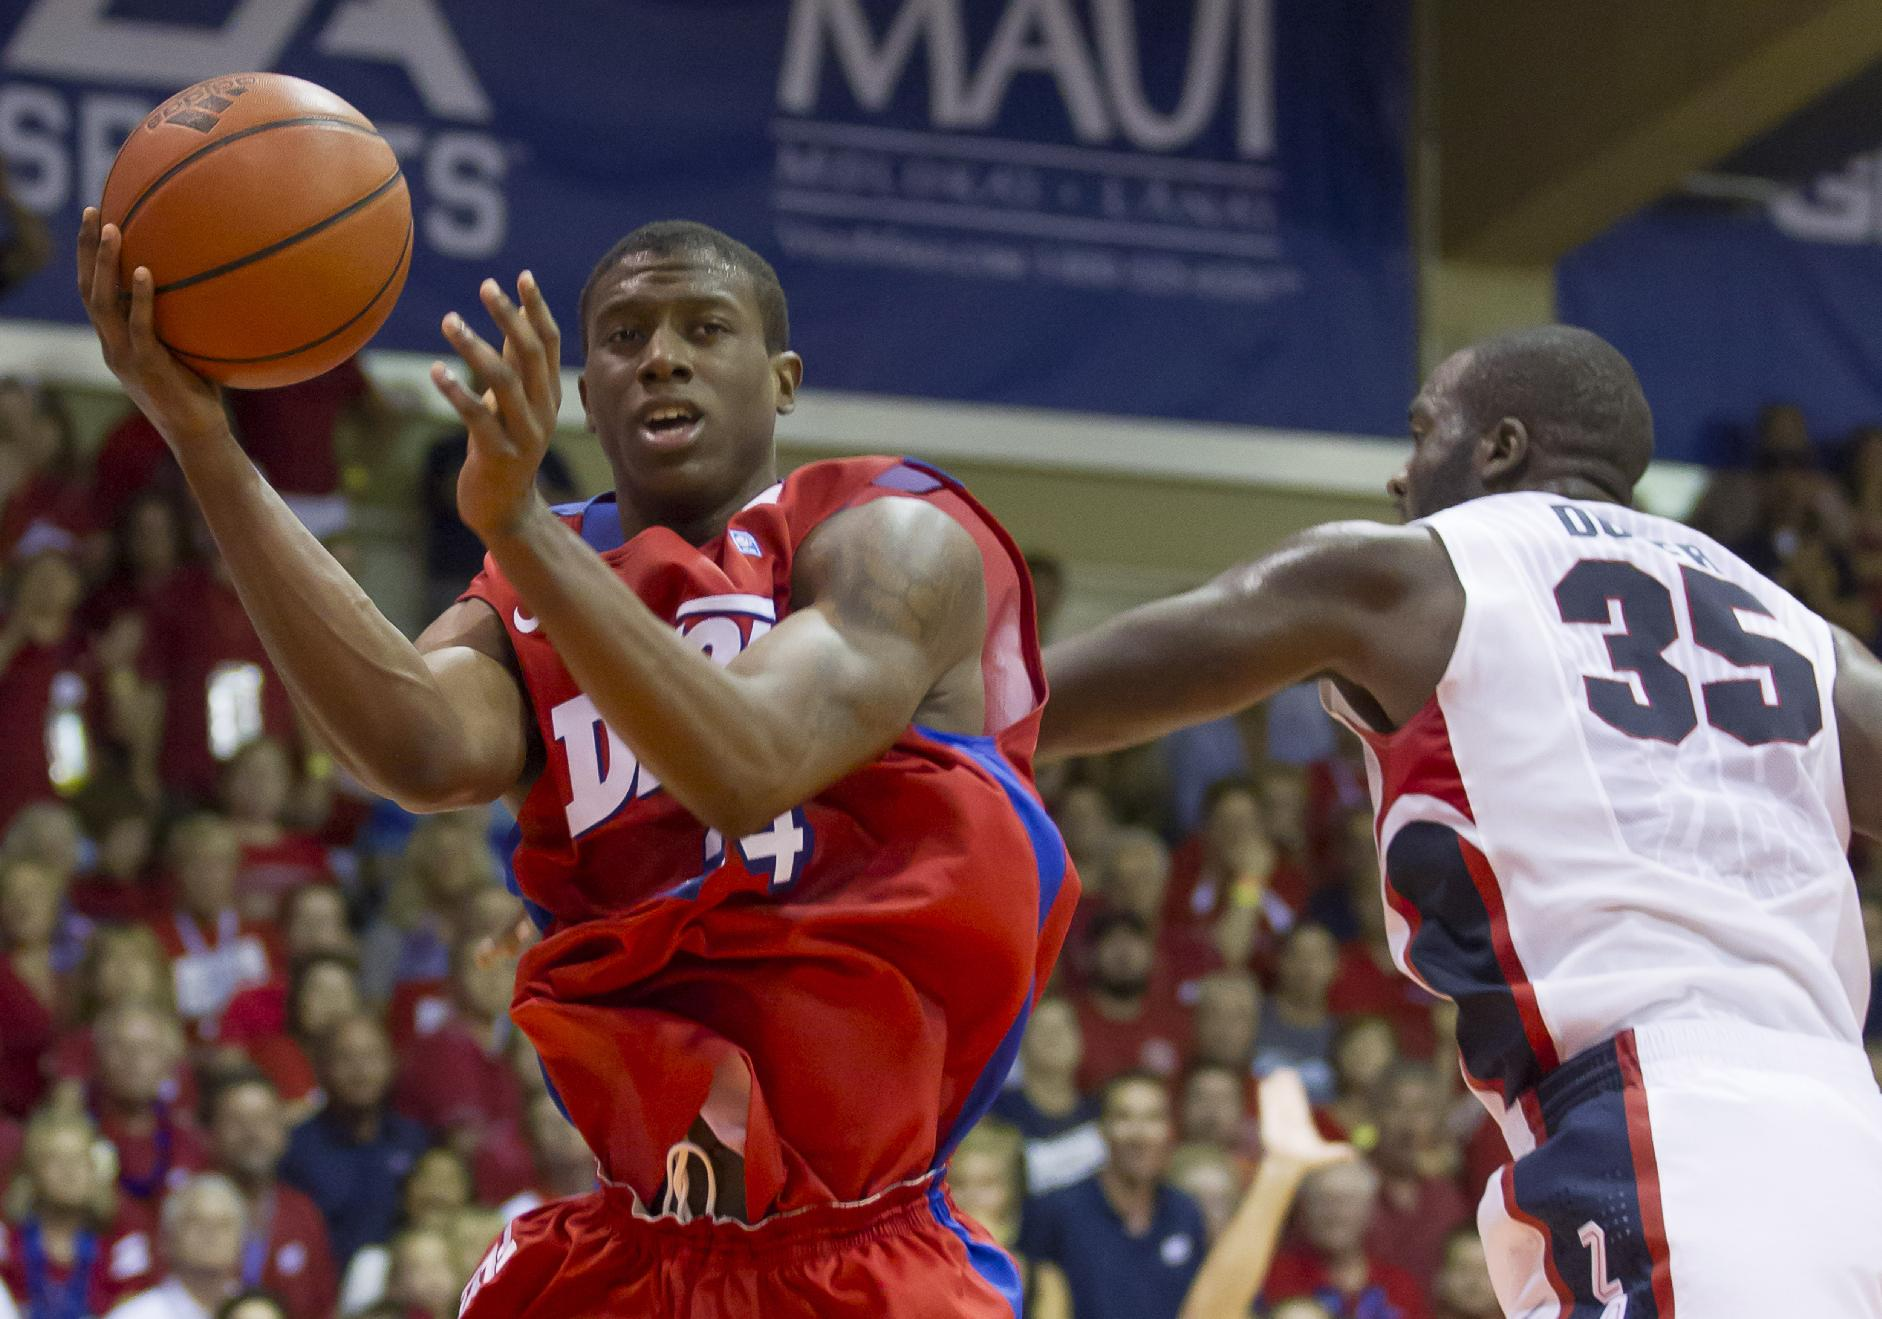 Dayton guard Jordan Sibert looks to pass off the basketball while being defended by Gonzaga center Sam Dower (35) in the second half of an NCAA college basketball game at the Maui Invitational on Monday, Nov. 25, 2013, in Lahaina, Hawaii. Dayton upset Gonzaga 84-79